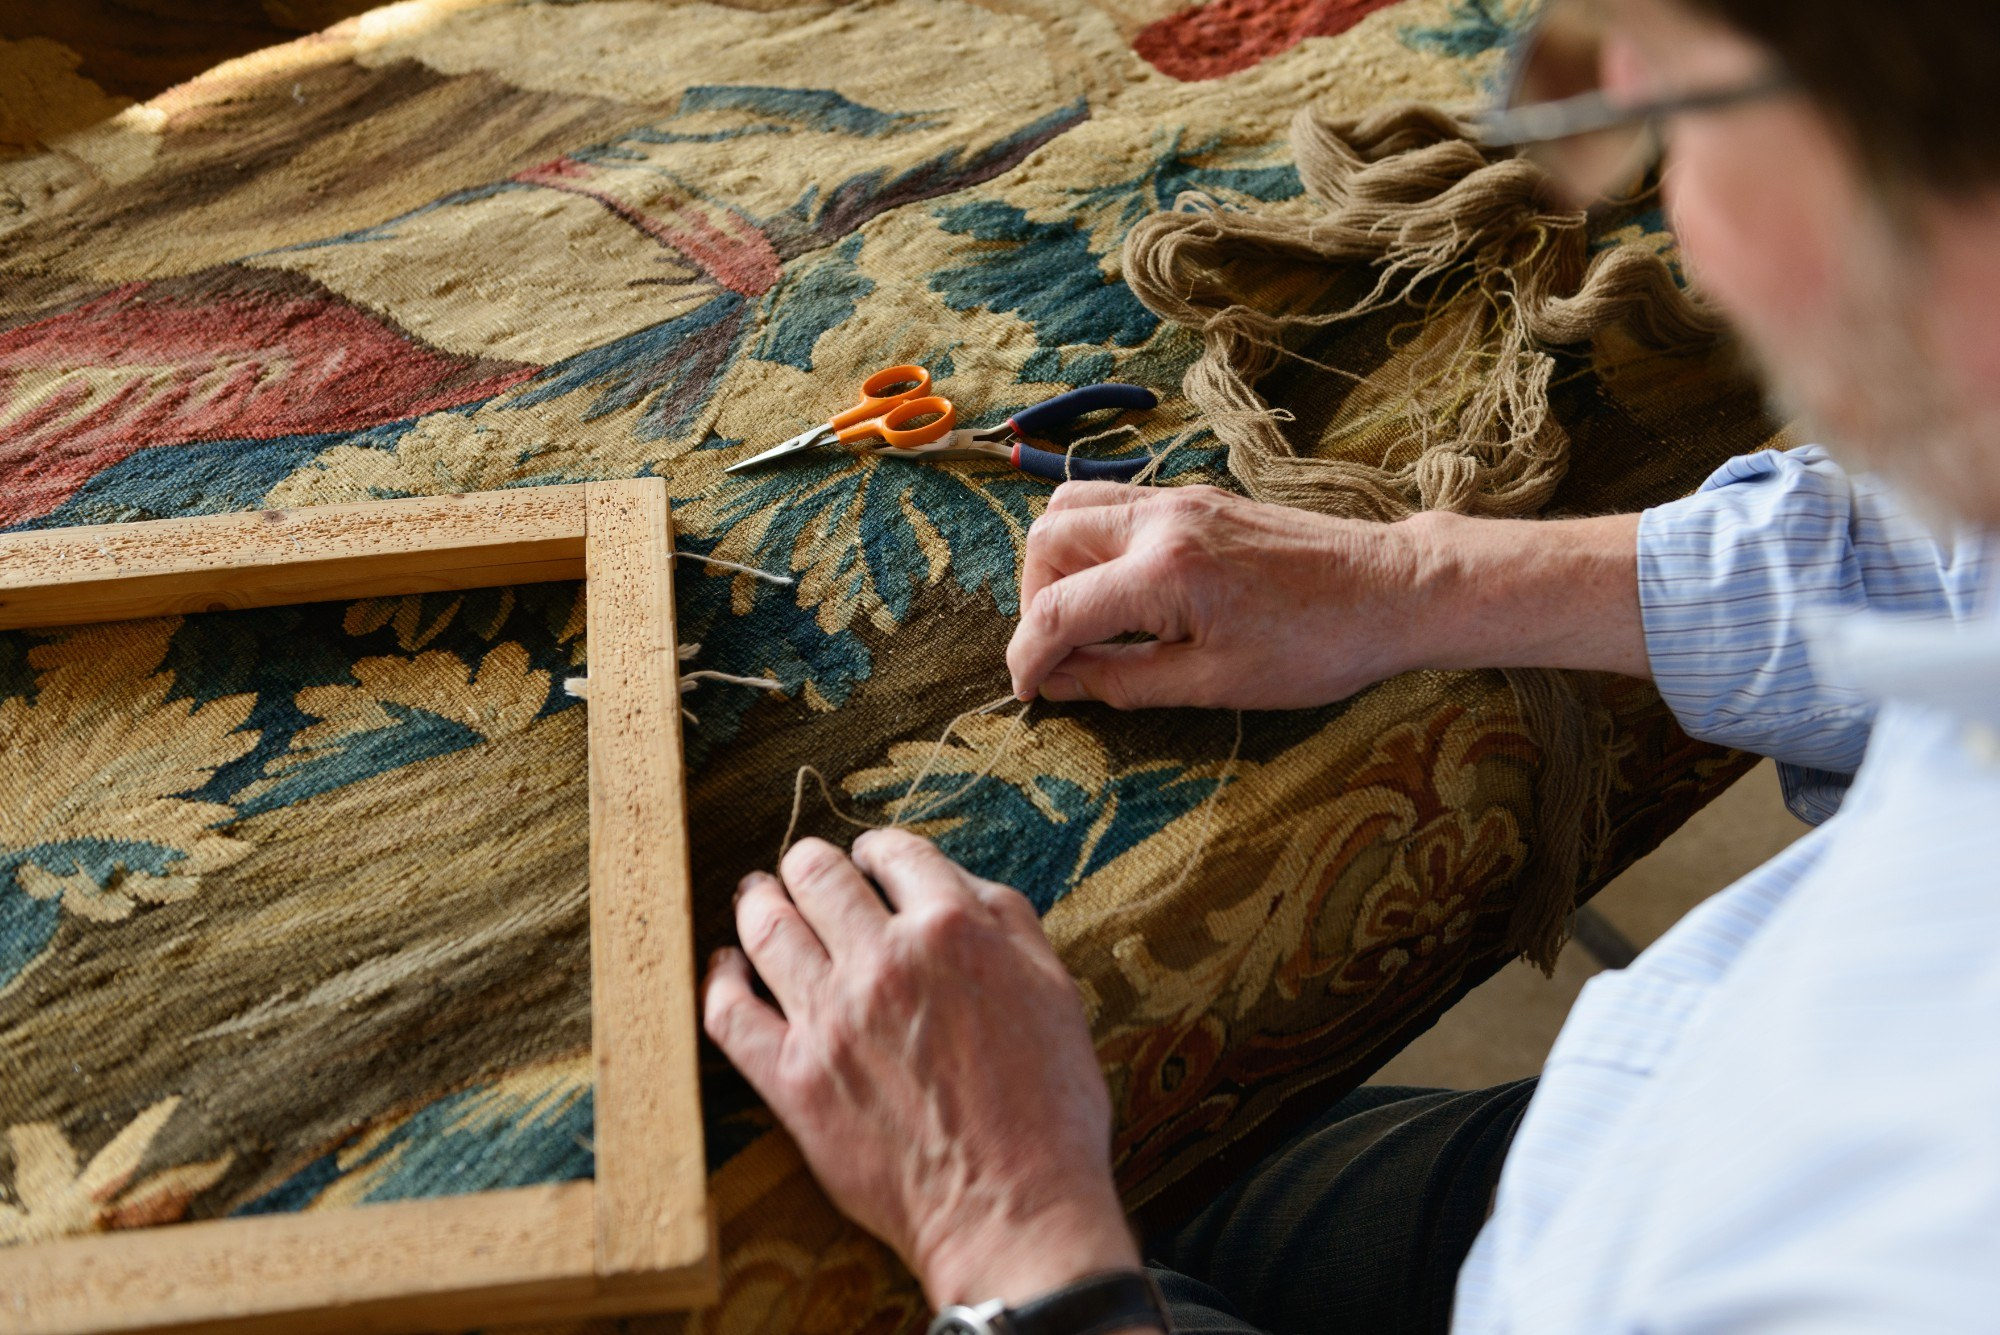 Man working on a tapestry